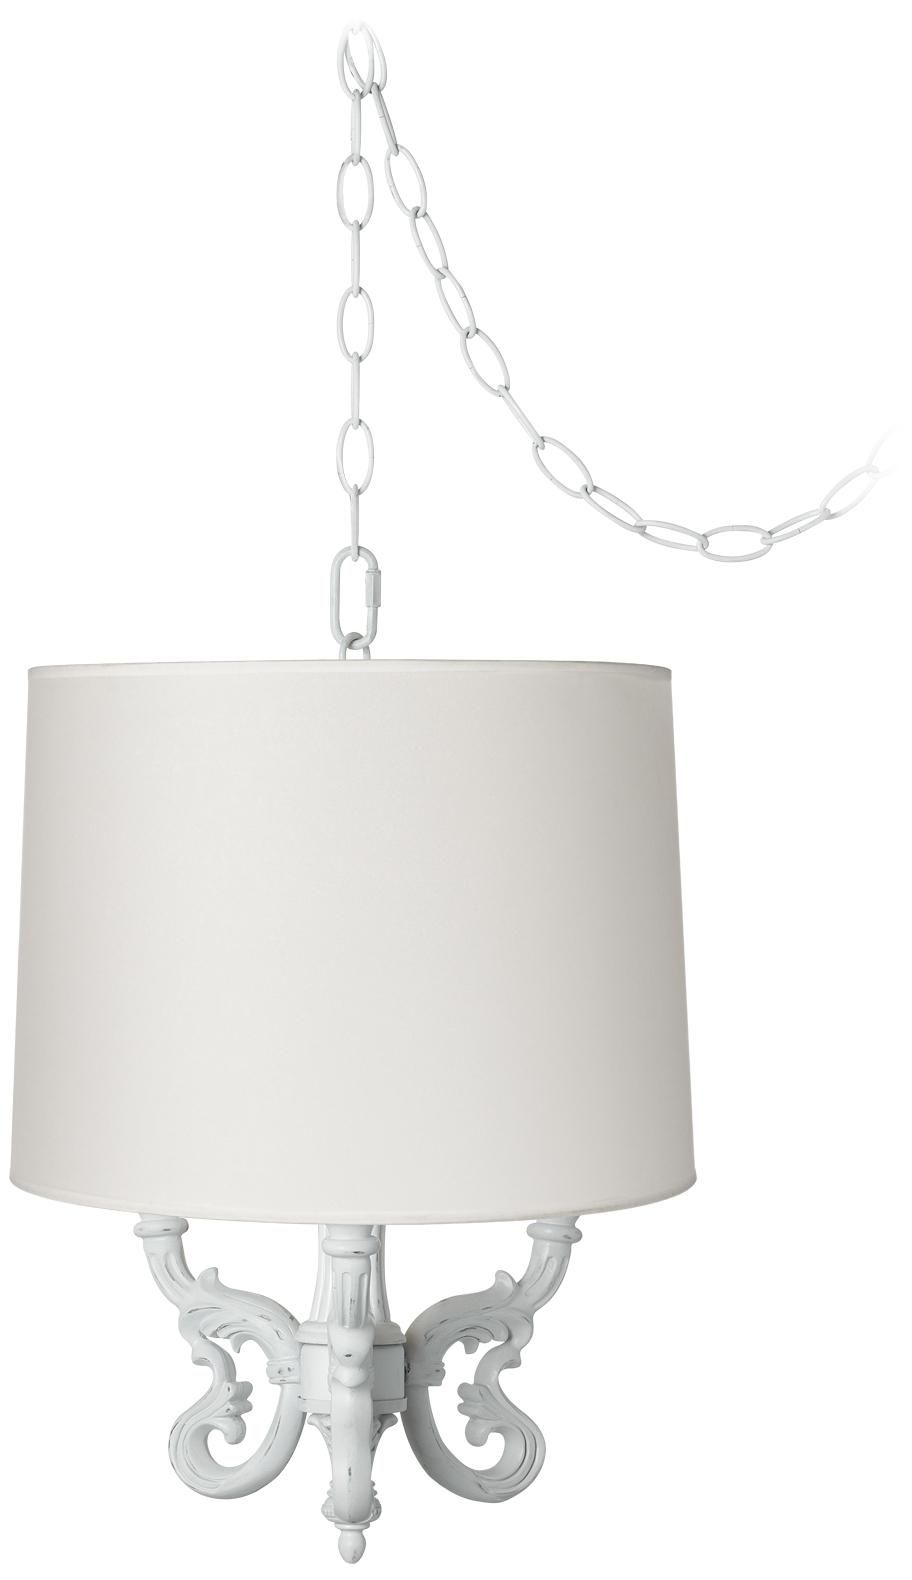 Roco white shade 14 wide mini swag chandelier lighting roco white shade 14 wide mini swag chandelier aloadofball Images